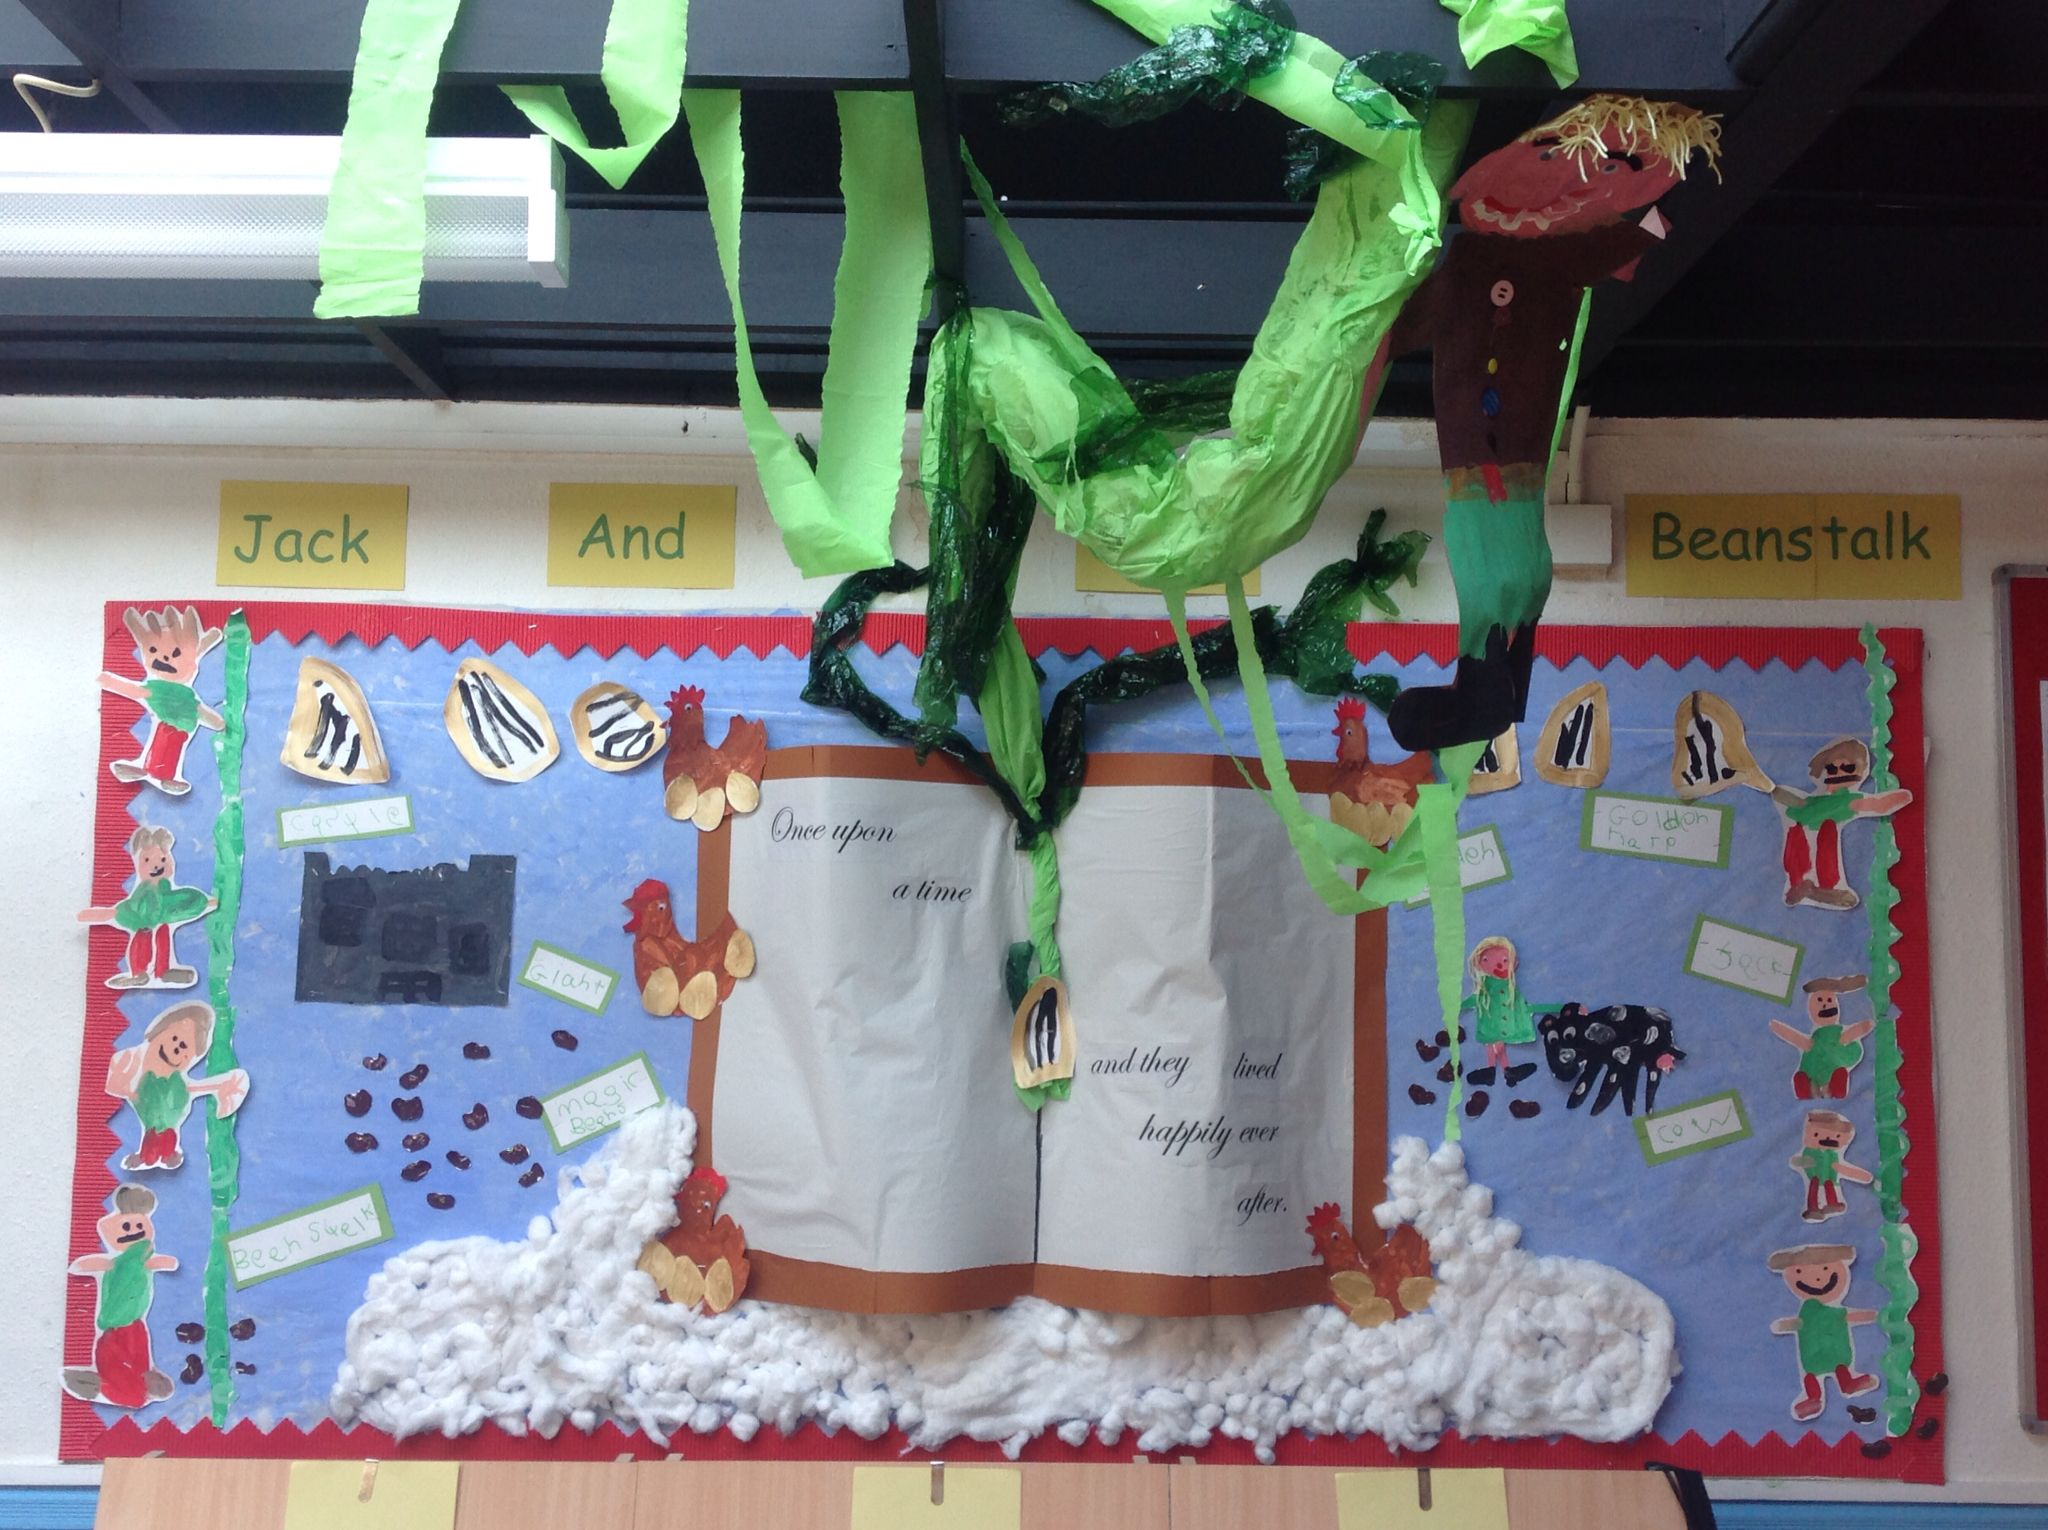 Jack Amp The Beanstalk Display Board Traditionaltales